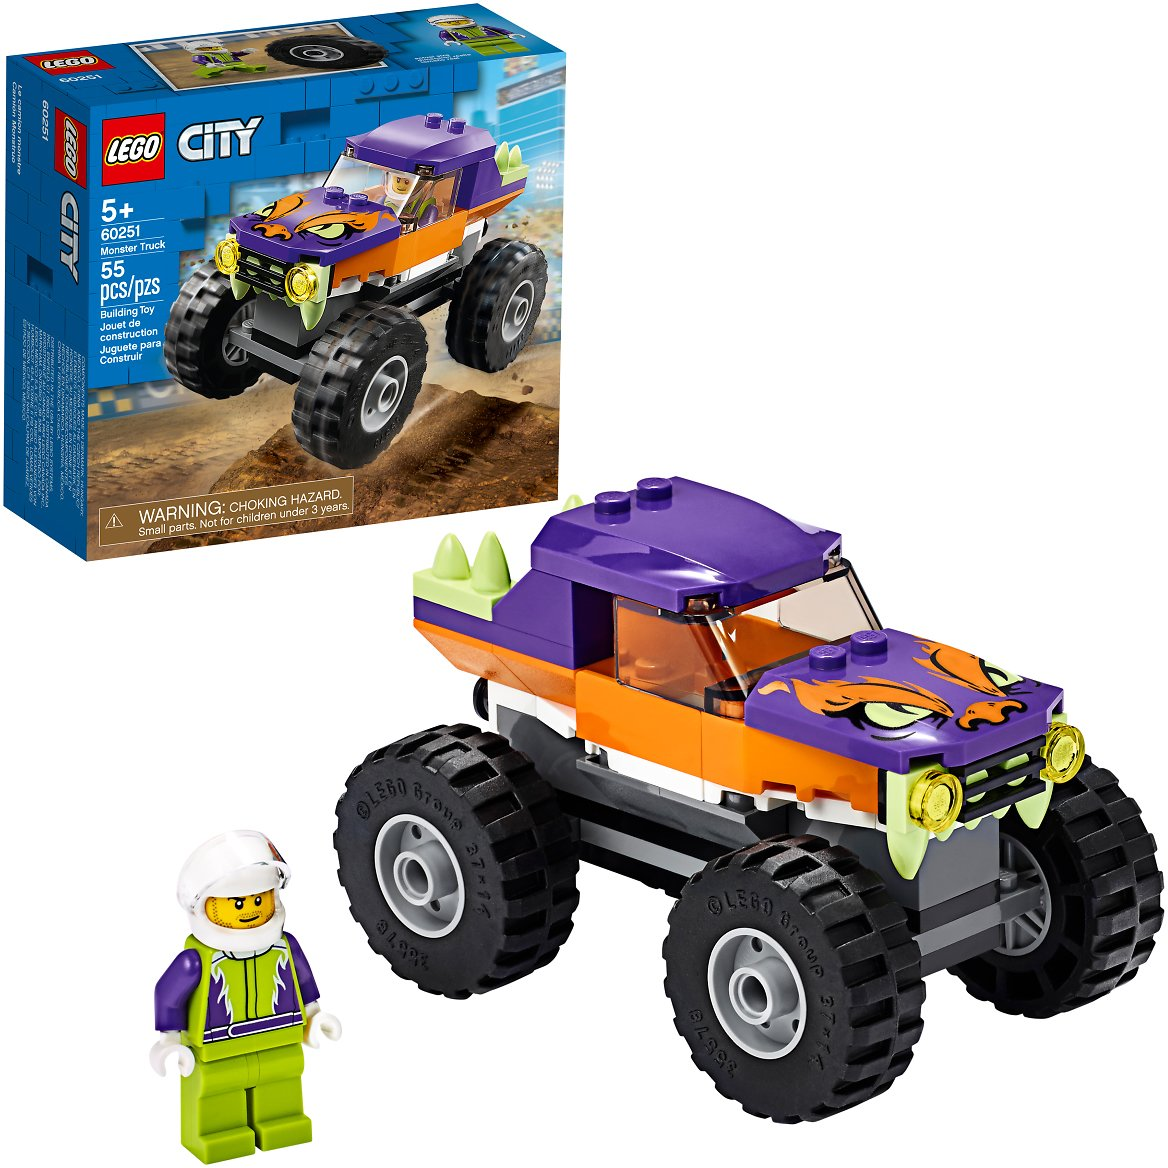 LEGO City Monster Truck 60251 (55 Pieces)